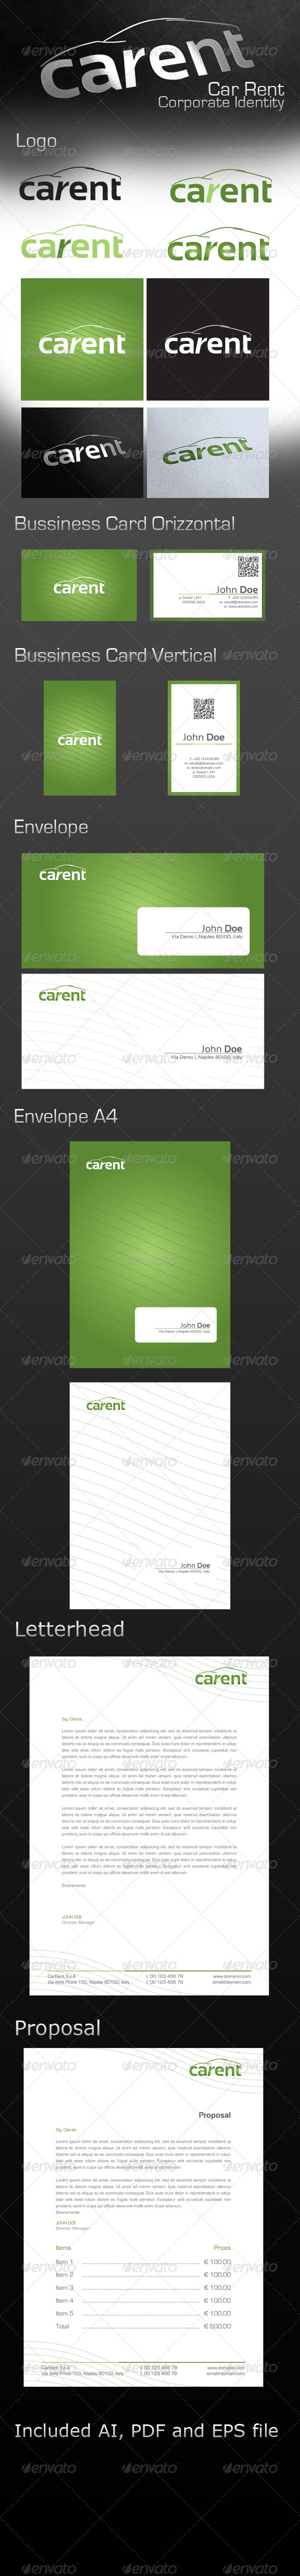 Car Rent Corporate Identity - Stationery Print Templates